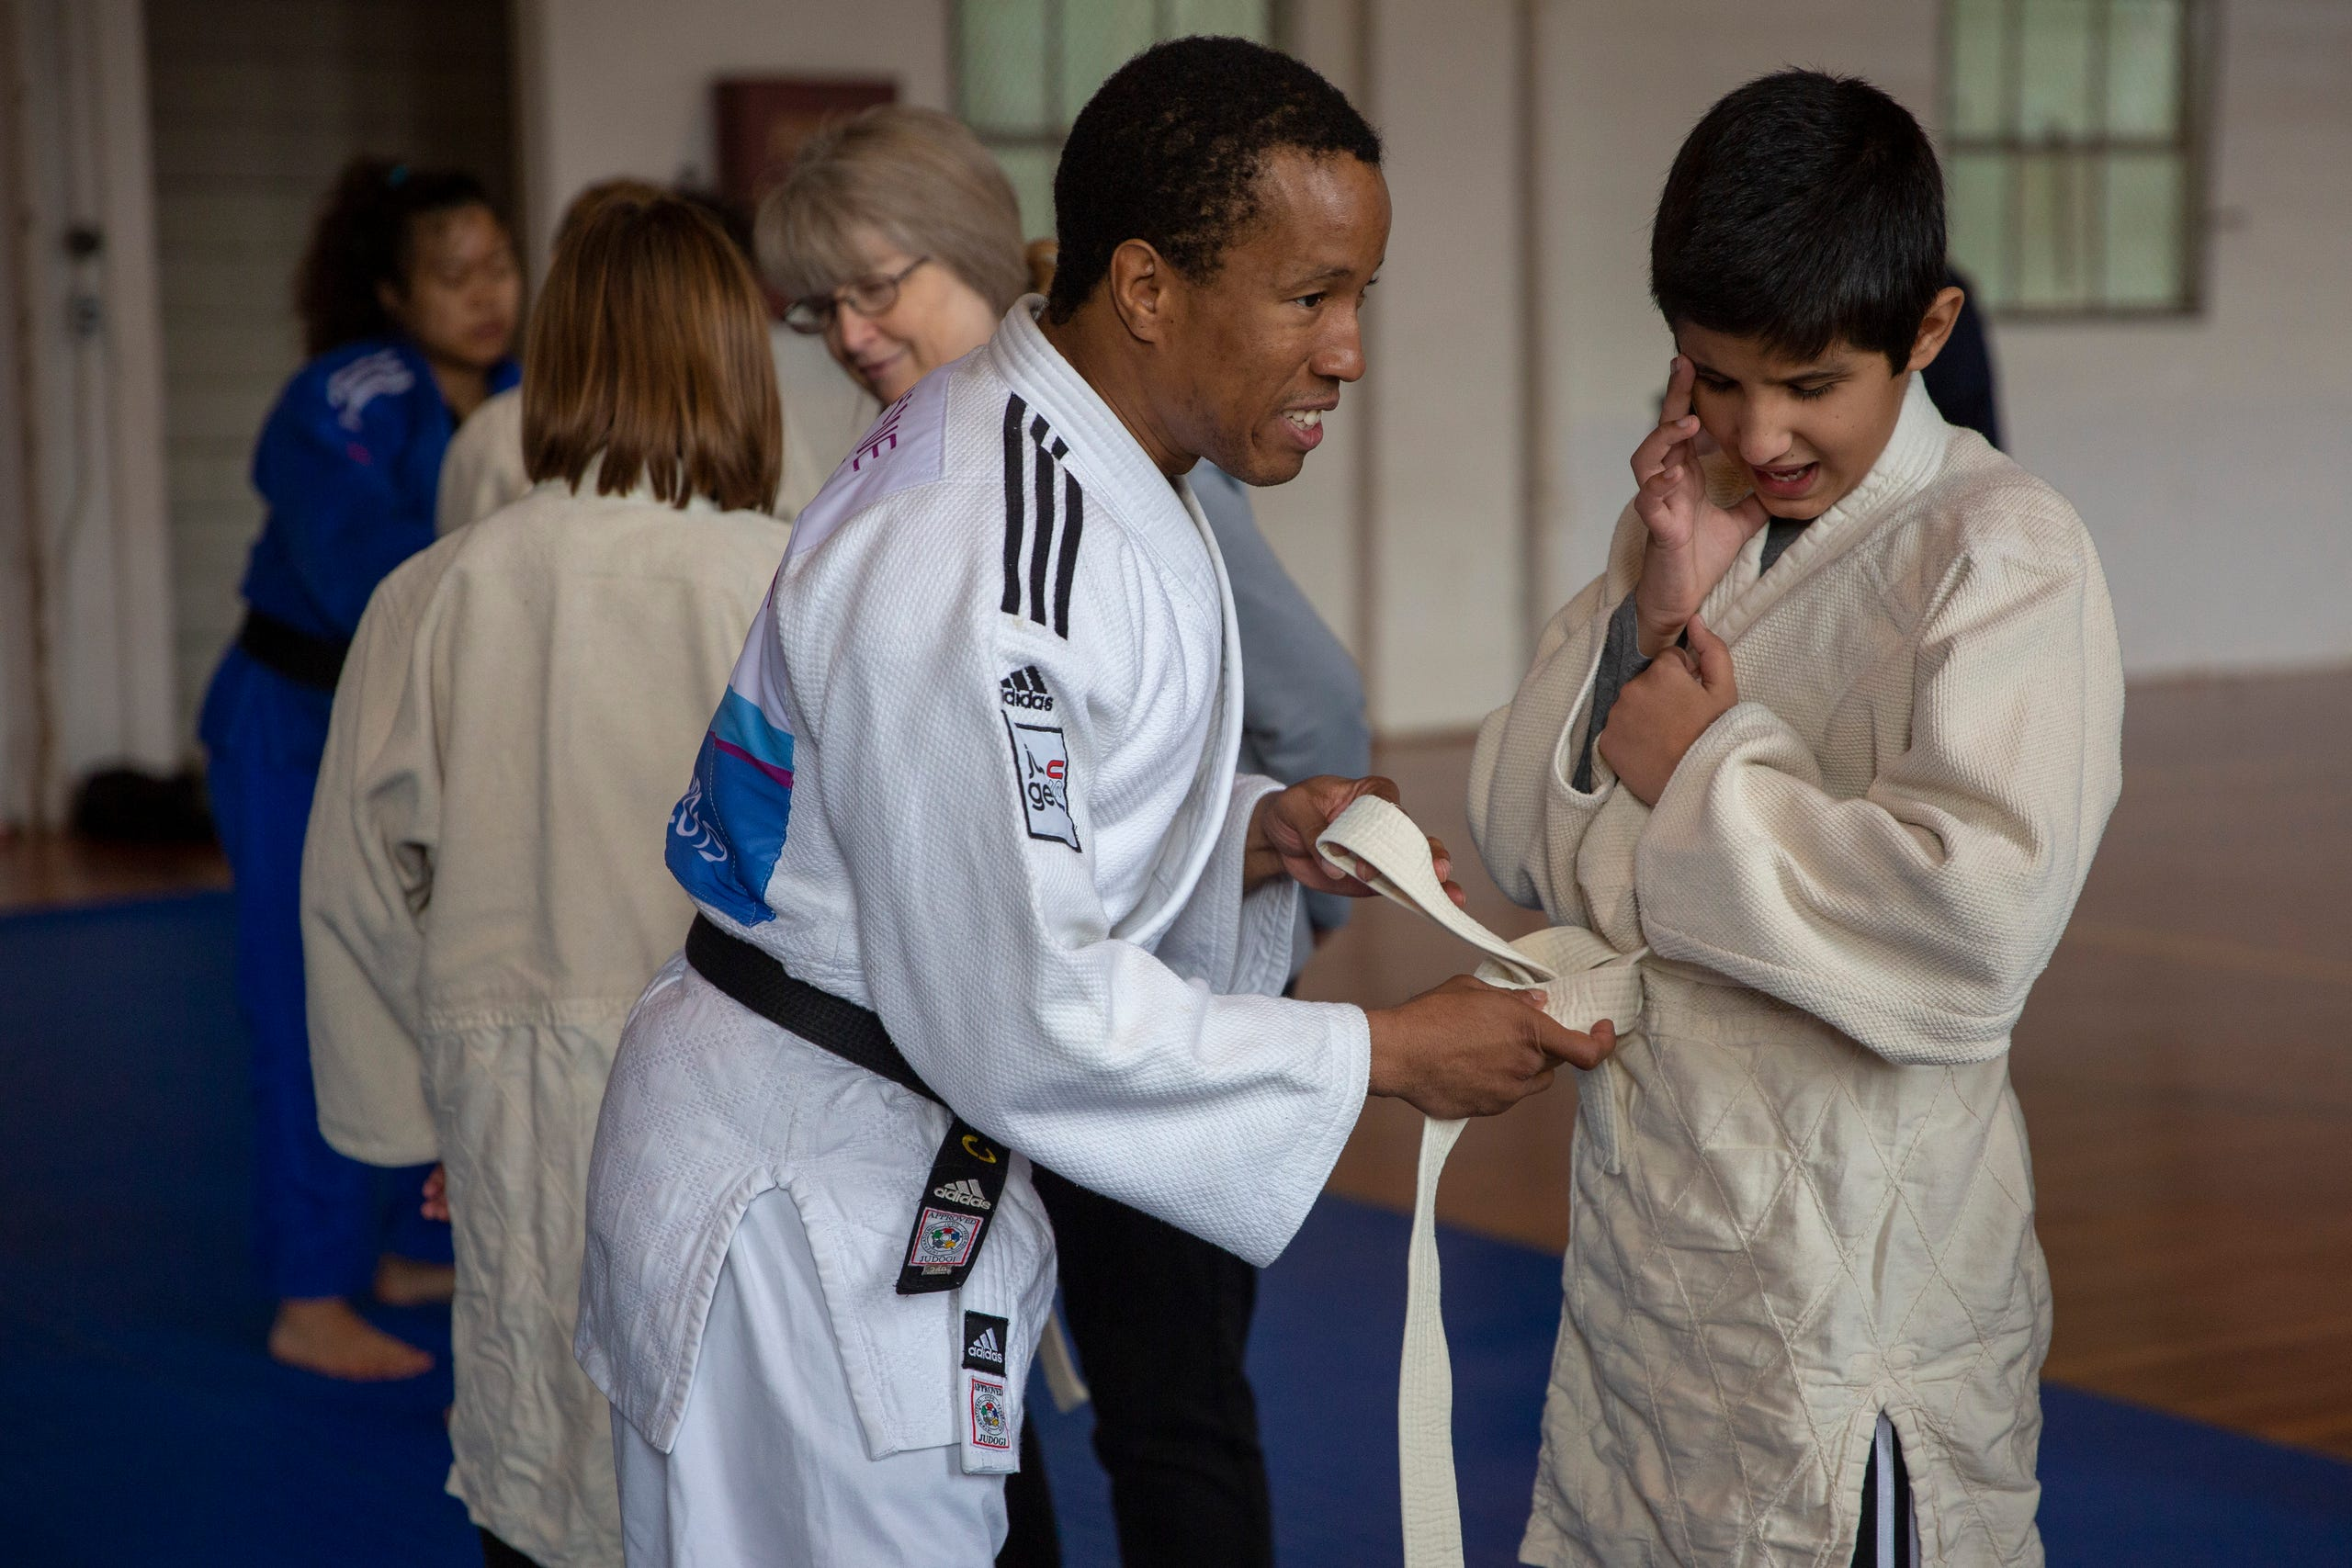 "Instructor and Judo Paralympian Ron Hawthorne ties the robe of sixth-grader Saifullah Tahirkheli at the Oregon School for the Deaf in Salem, Oct. 4, 2019. NWABA, the Northwest Association for Blind Athletes, hosted a ""Paralympic experience"" for students with visual impairments in the state. After the Oregon School for the Blind closed in 2009, many visually impaired students and their families lost access to state-funded resources, like sports programs. The BVIS (Blind Visually Impaired Student) Fund gives programs like NWABA funds to enhance the lives of low vision/blind children across the state."